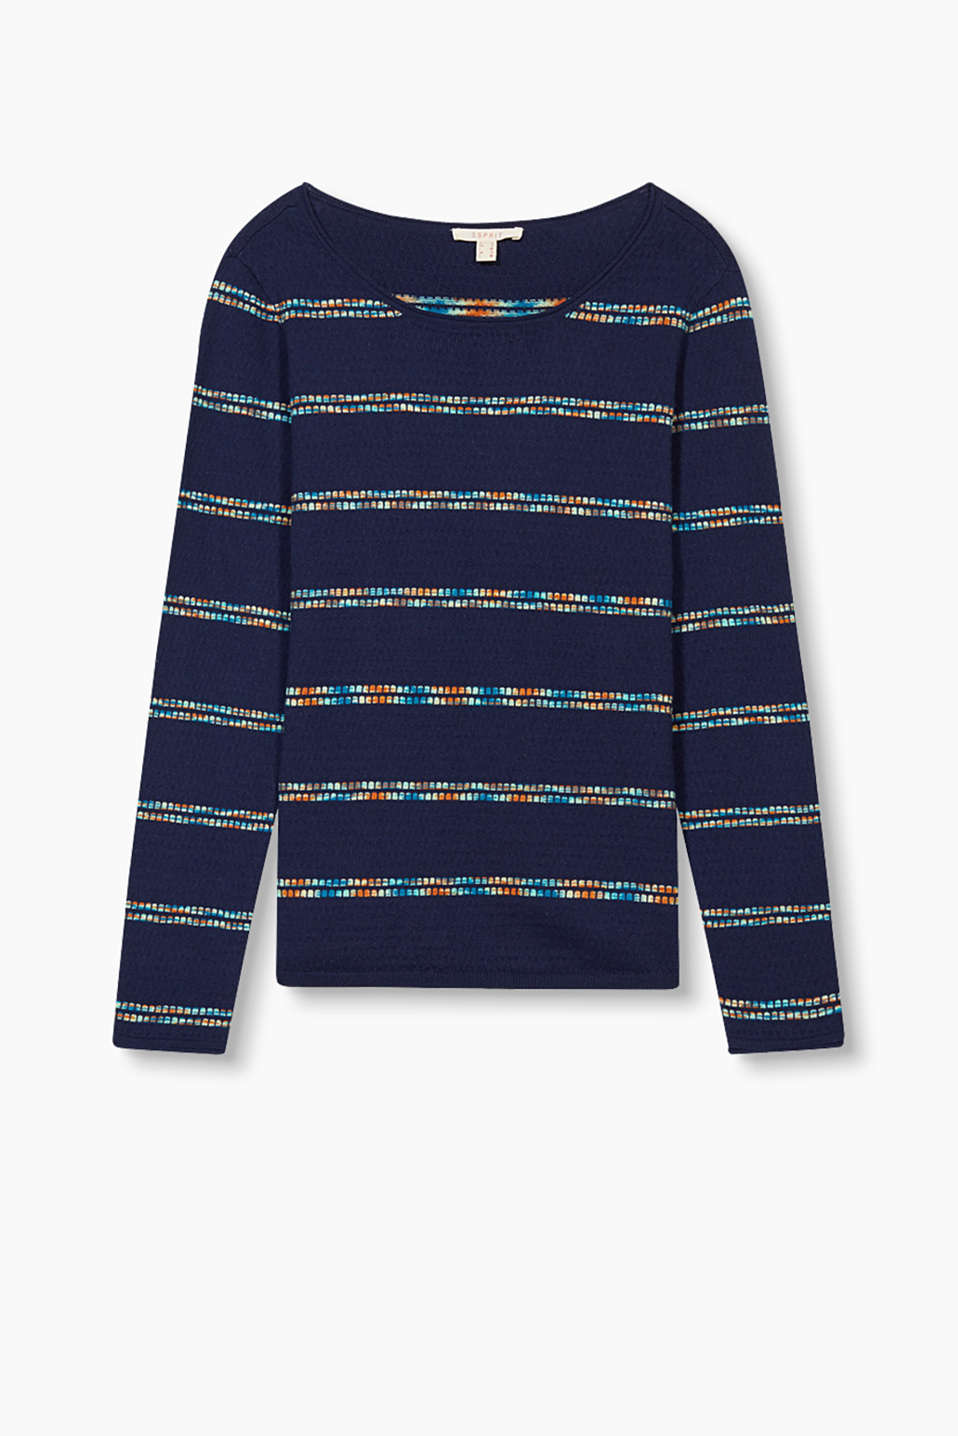 with knitted multi-coloured stripes